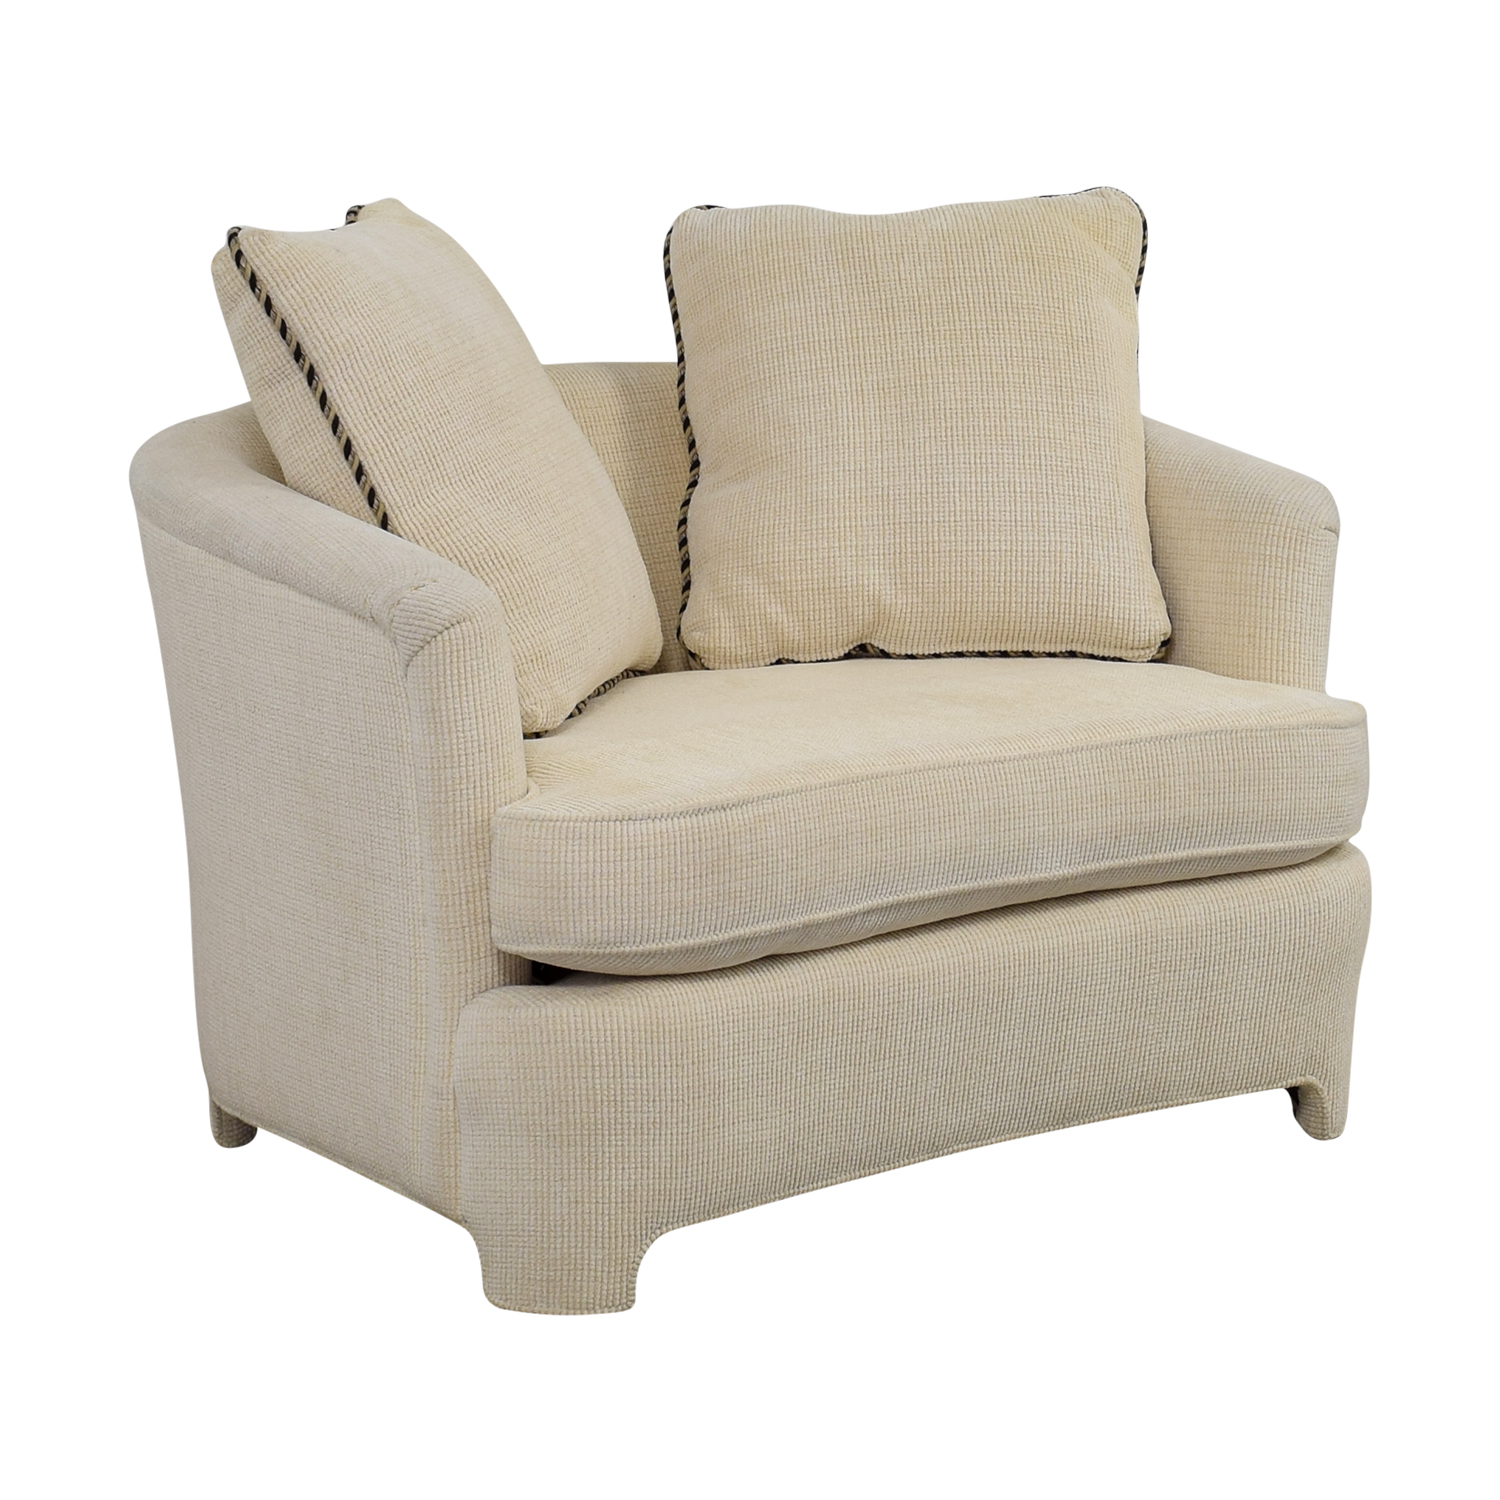 ... Off White Accent Chair With Pillows ...